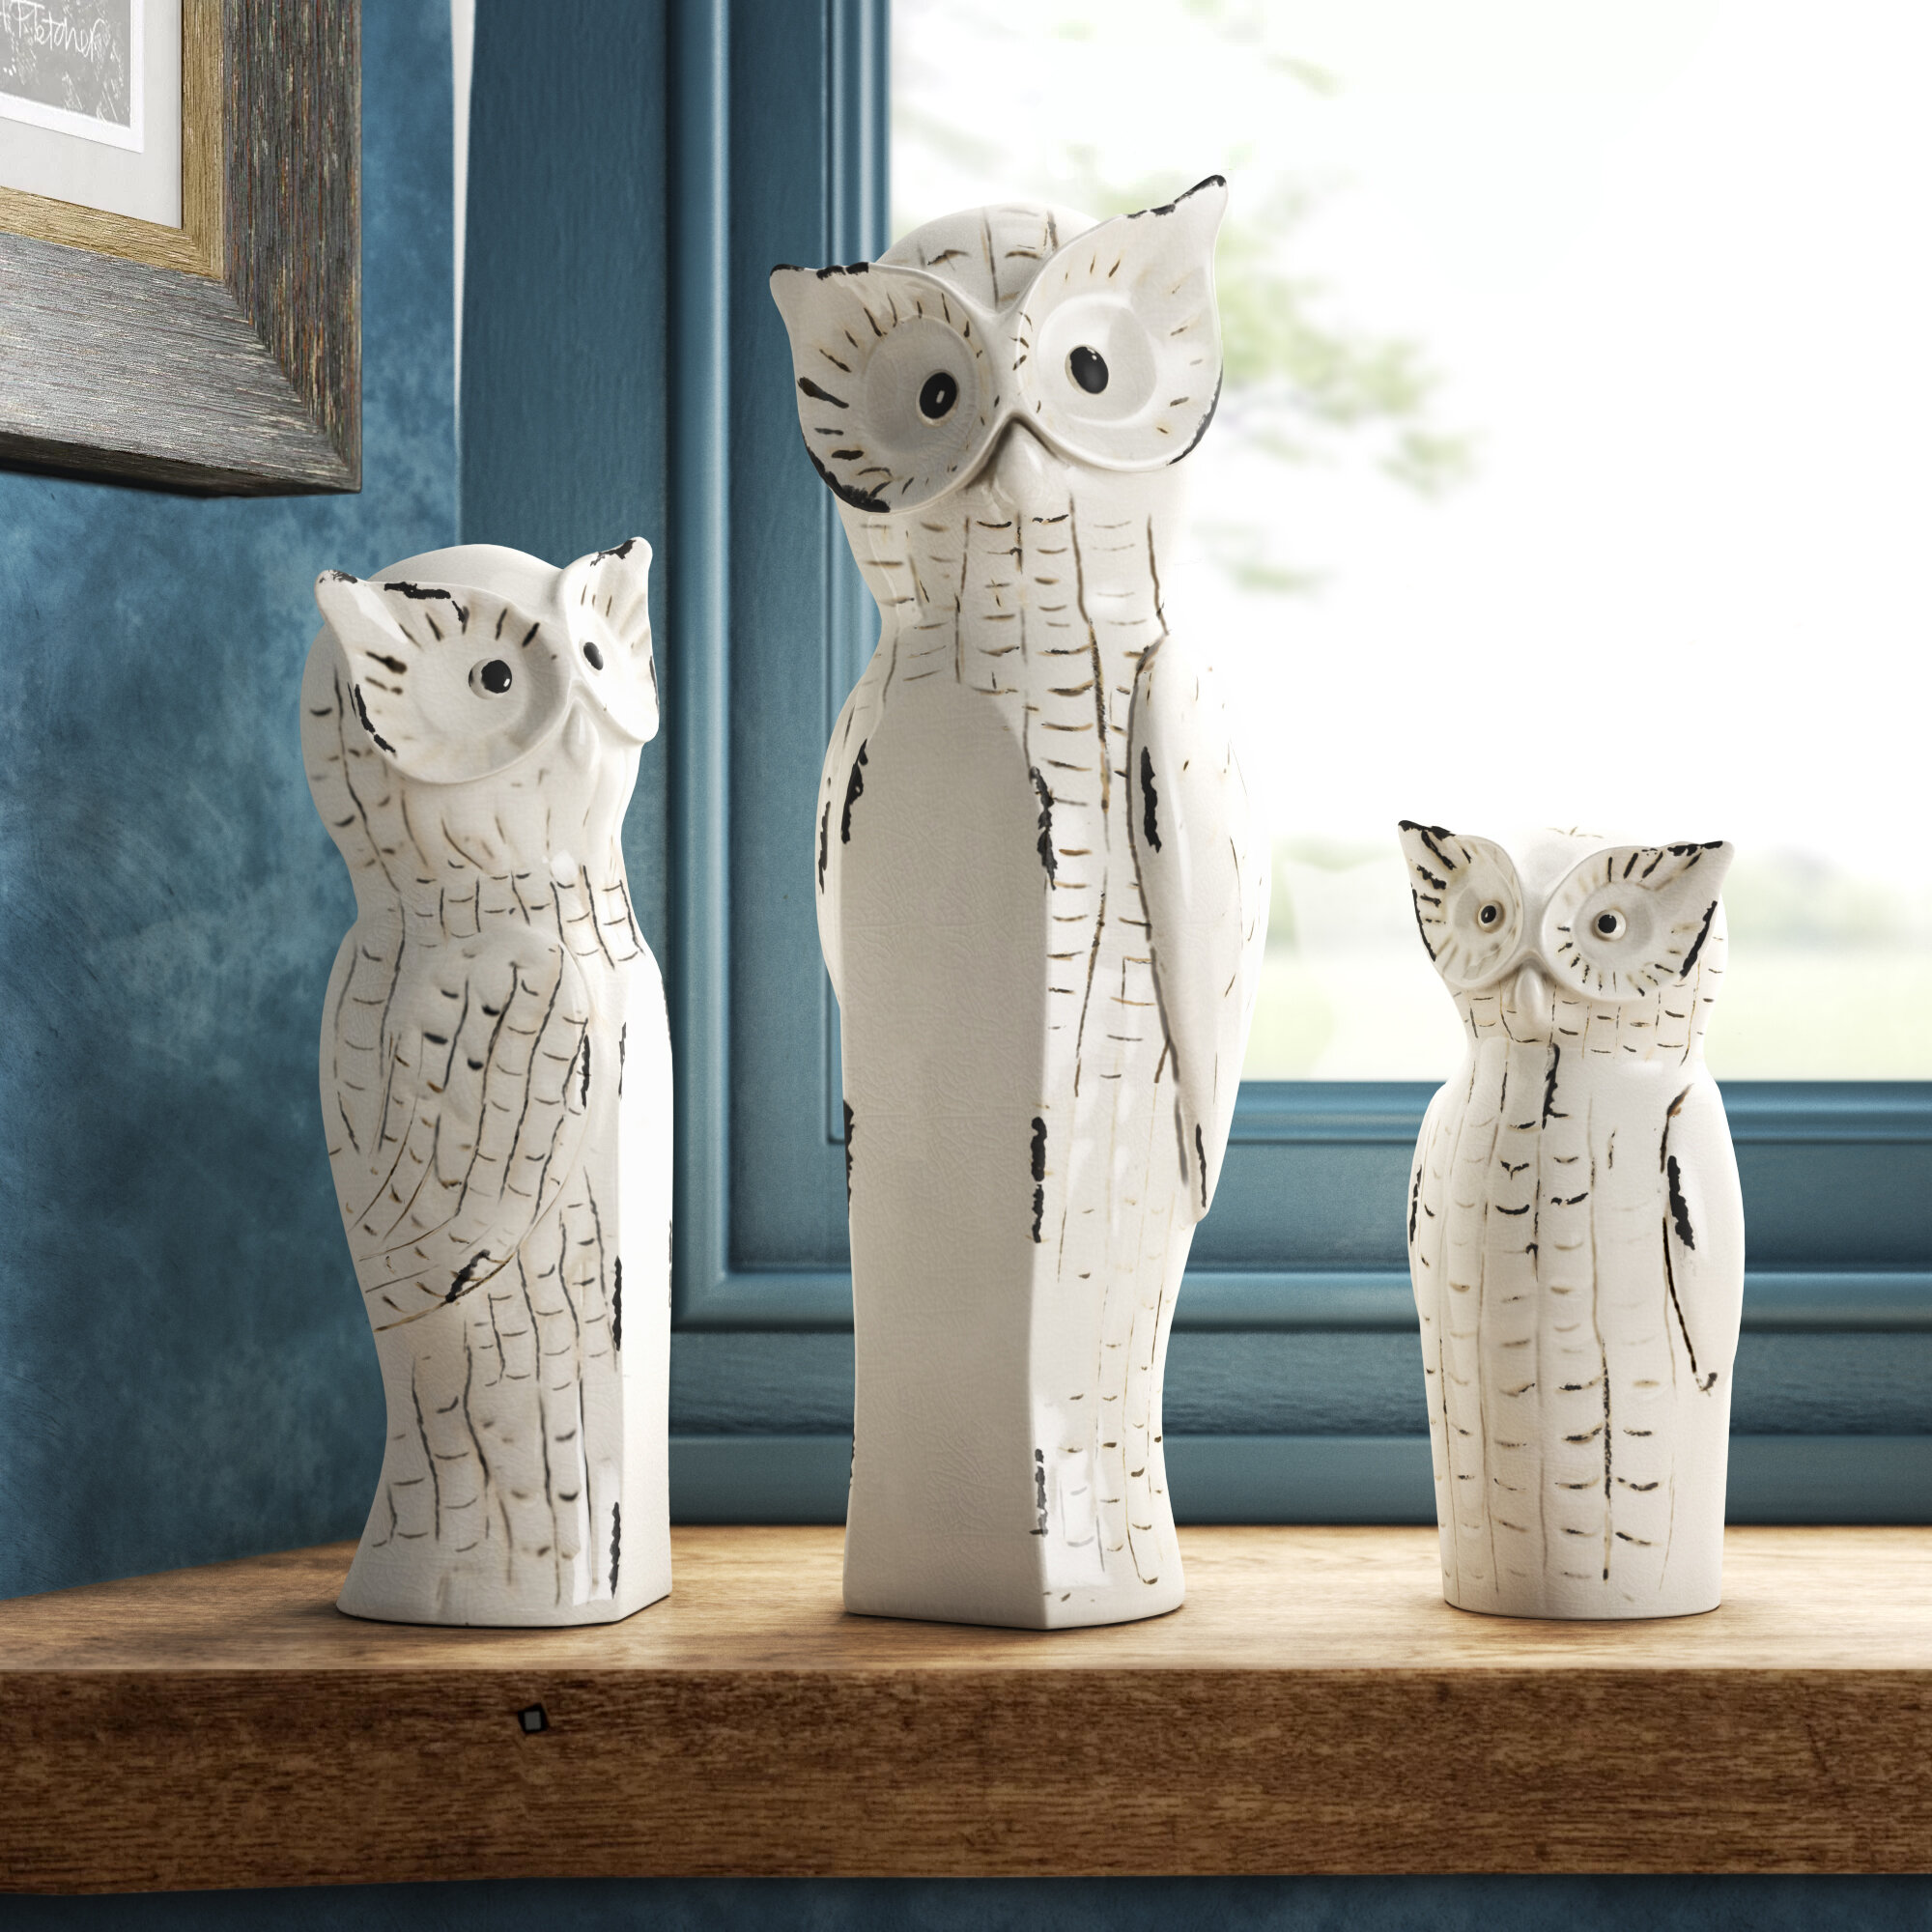 Owl Family 3 Piece Figurine Set Reviews Birch Lane